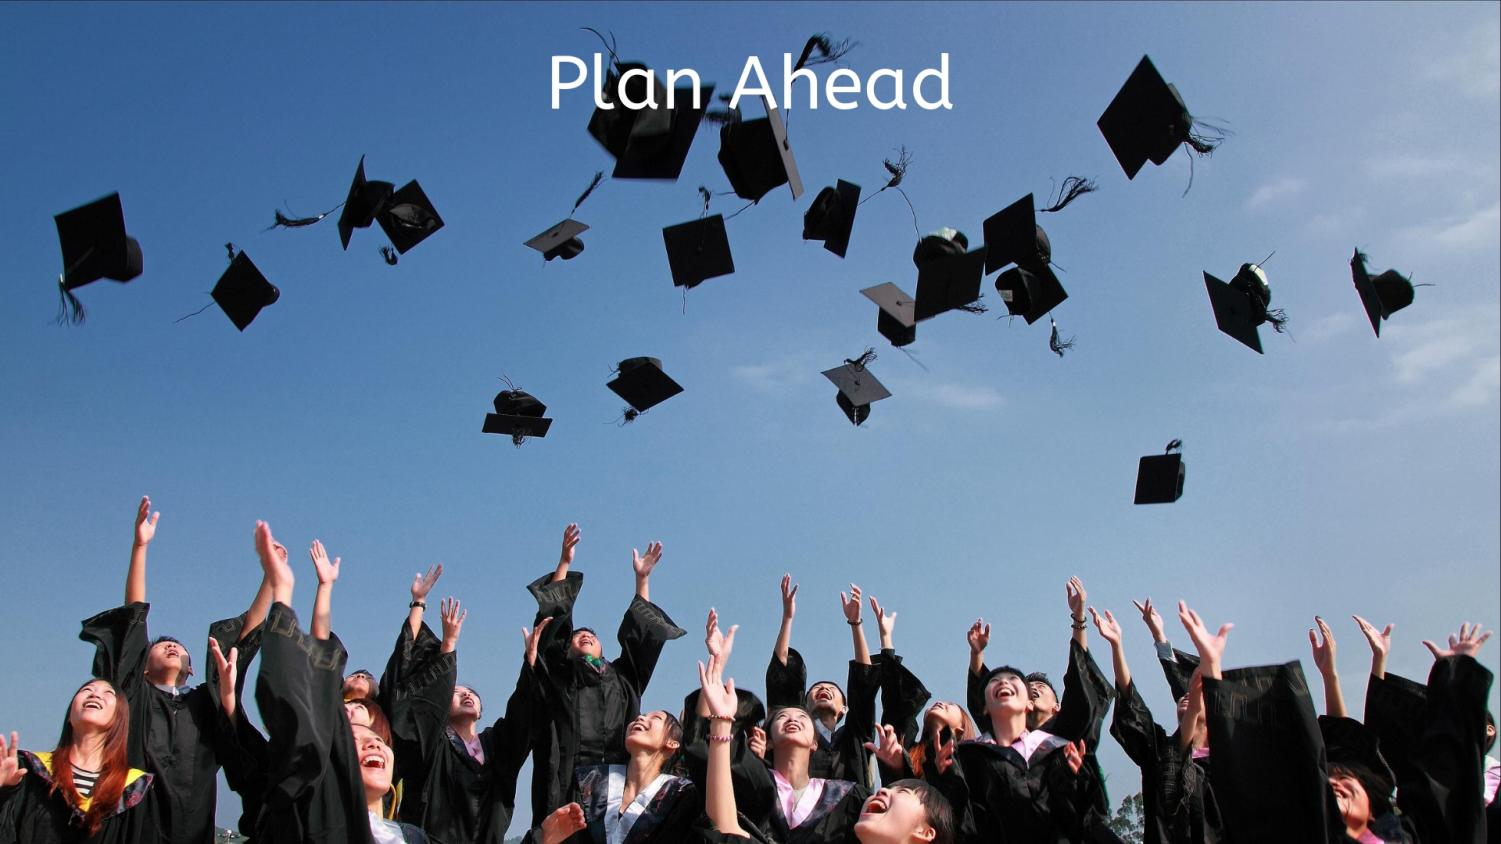 Plan+ahead+-+Think+about+your+plans+after+high+school%2C+does+this+include+the+military%2C+college%2C+or+work%3F+It%E2%80%99s+never+too+early+plan%2C+prepare%2C+and+proceed+with+post+graduation+ideas.++Again%2C+start+small%3B+go+on+some+college+websites%2C+contact+some+administrators%2C+and+research+standards+for+different+colleges+as+well+as+requirements+and+training+for+the+military.+Think+about+work+once+you+graduate%2C+consider+the+payroll+and+hours+that+are+convenient+for+you+and+your+schedule.+